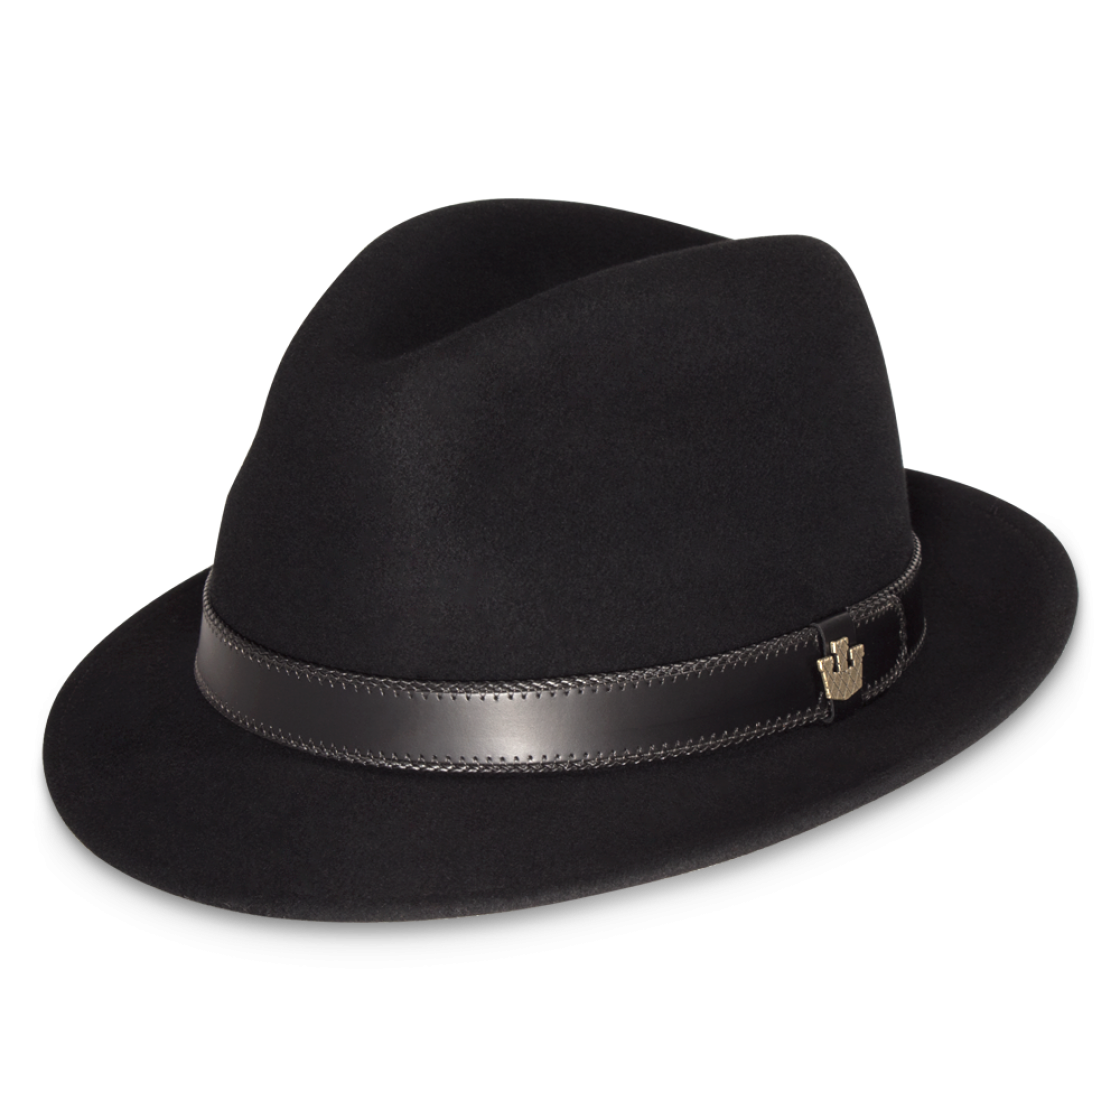 Thug transparent png hat. Fedora pictures free icons